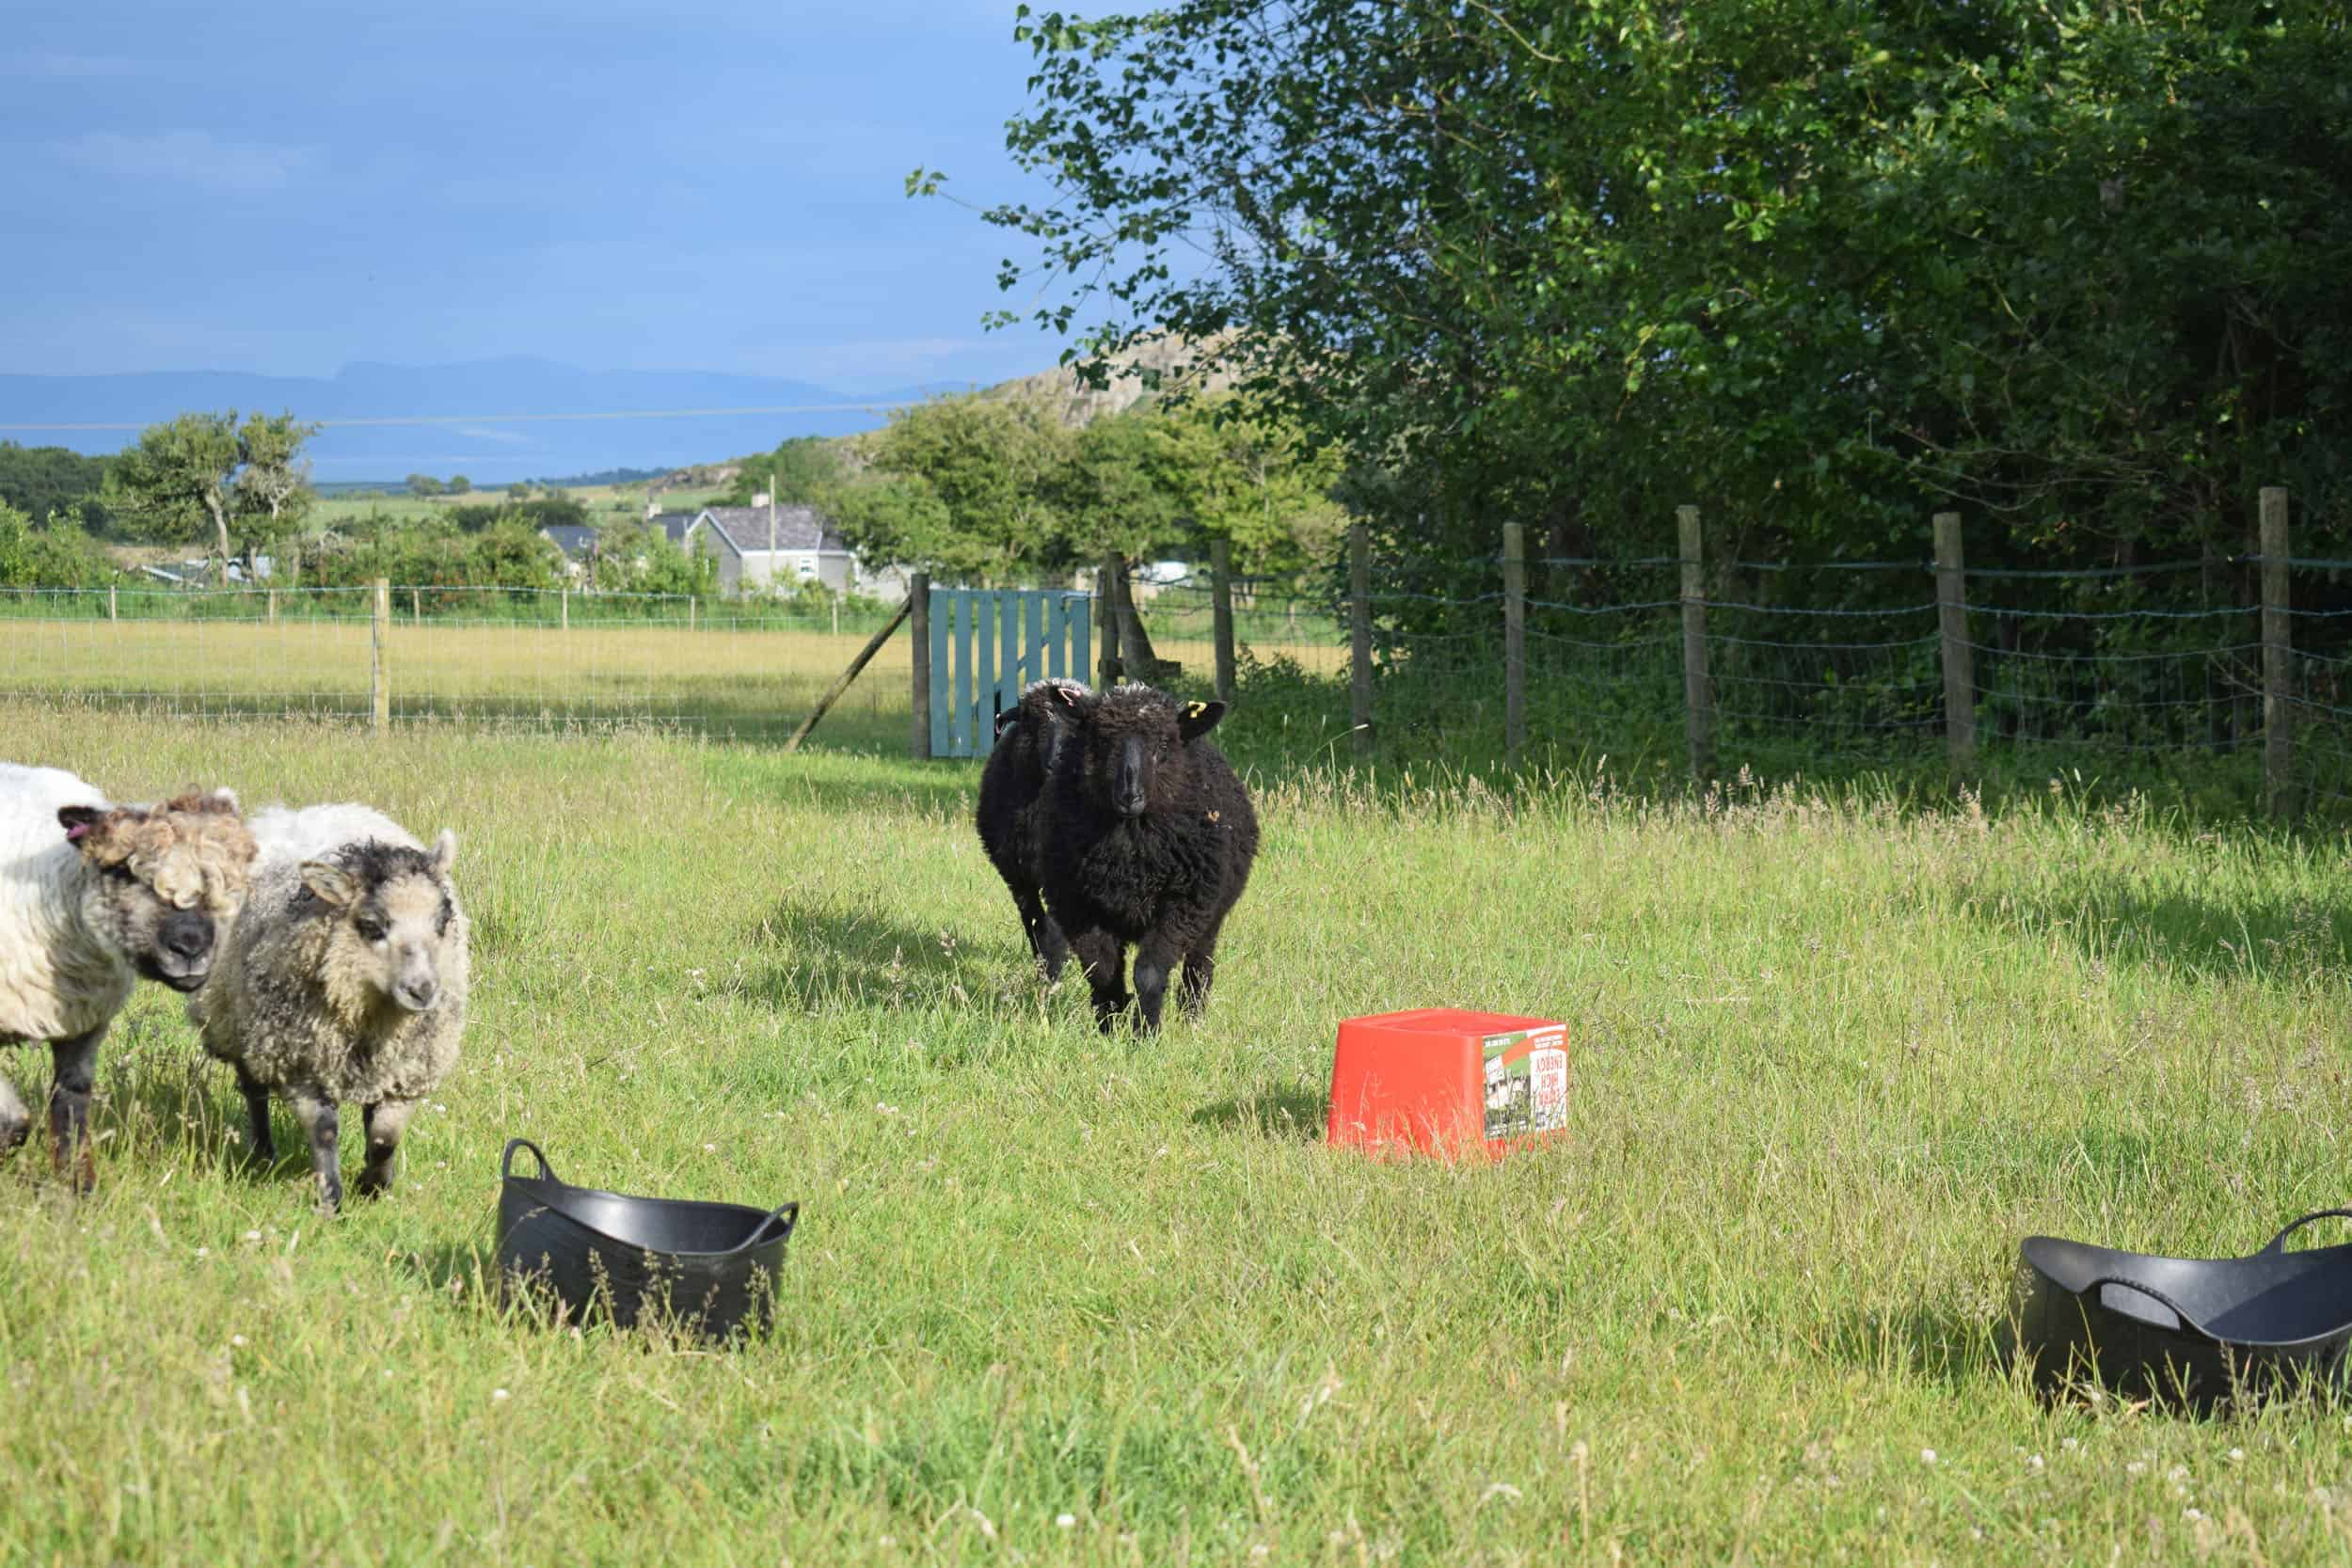 Griffin patchwork sheep sustainable sheep black sheep lamb valais spitti blacknose cross bfl blue face leicester ram lamb black